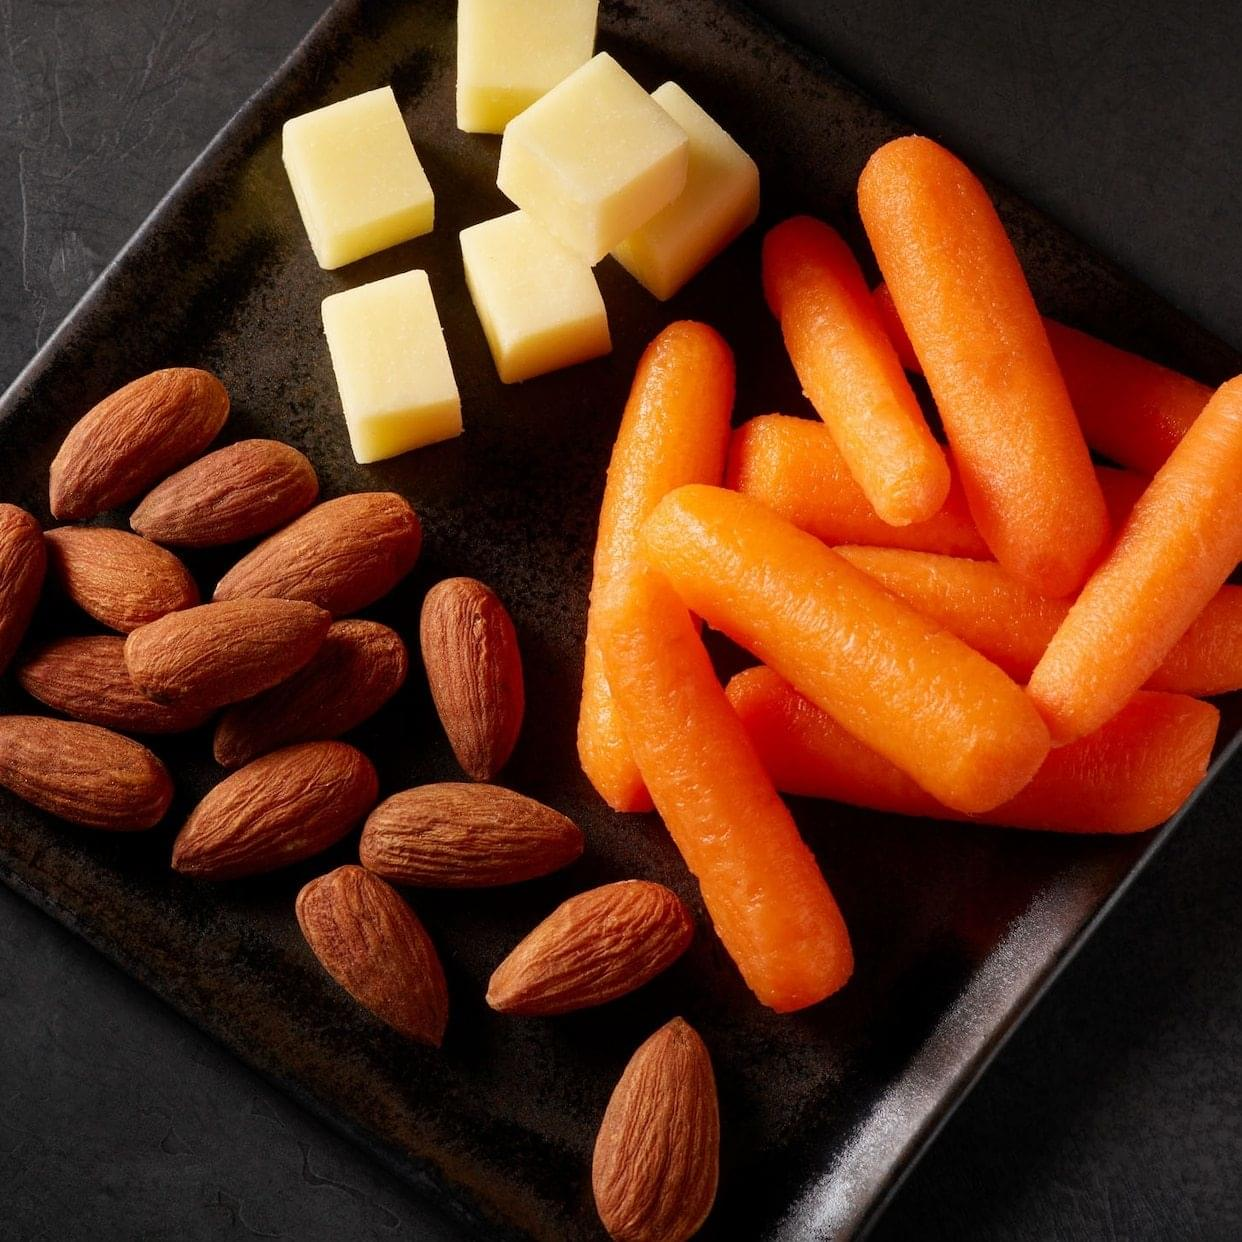 Starbucks Prosnax Carrots, White Cheddar Cheese, and Almonds Snack Tray Nutrition Facts